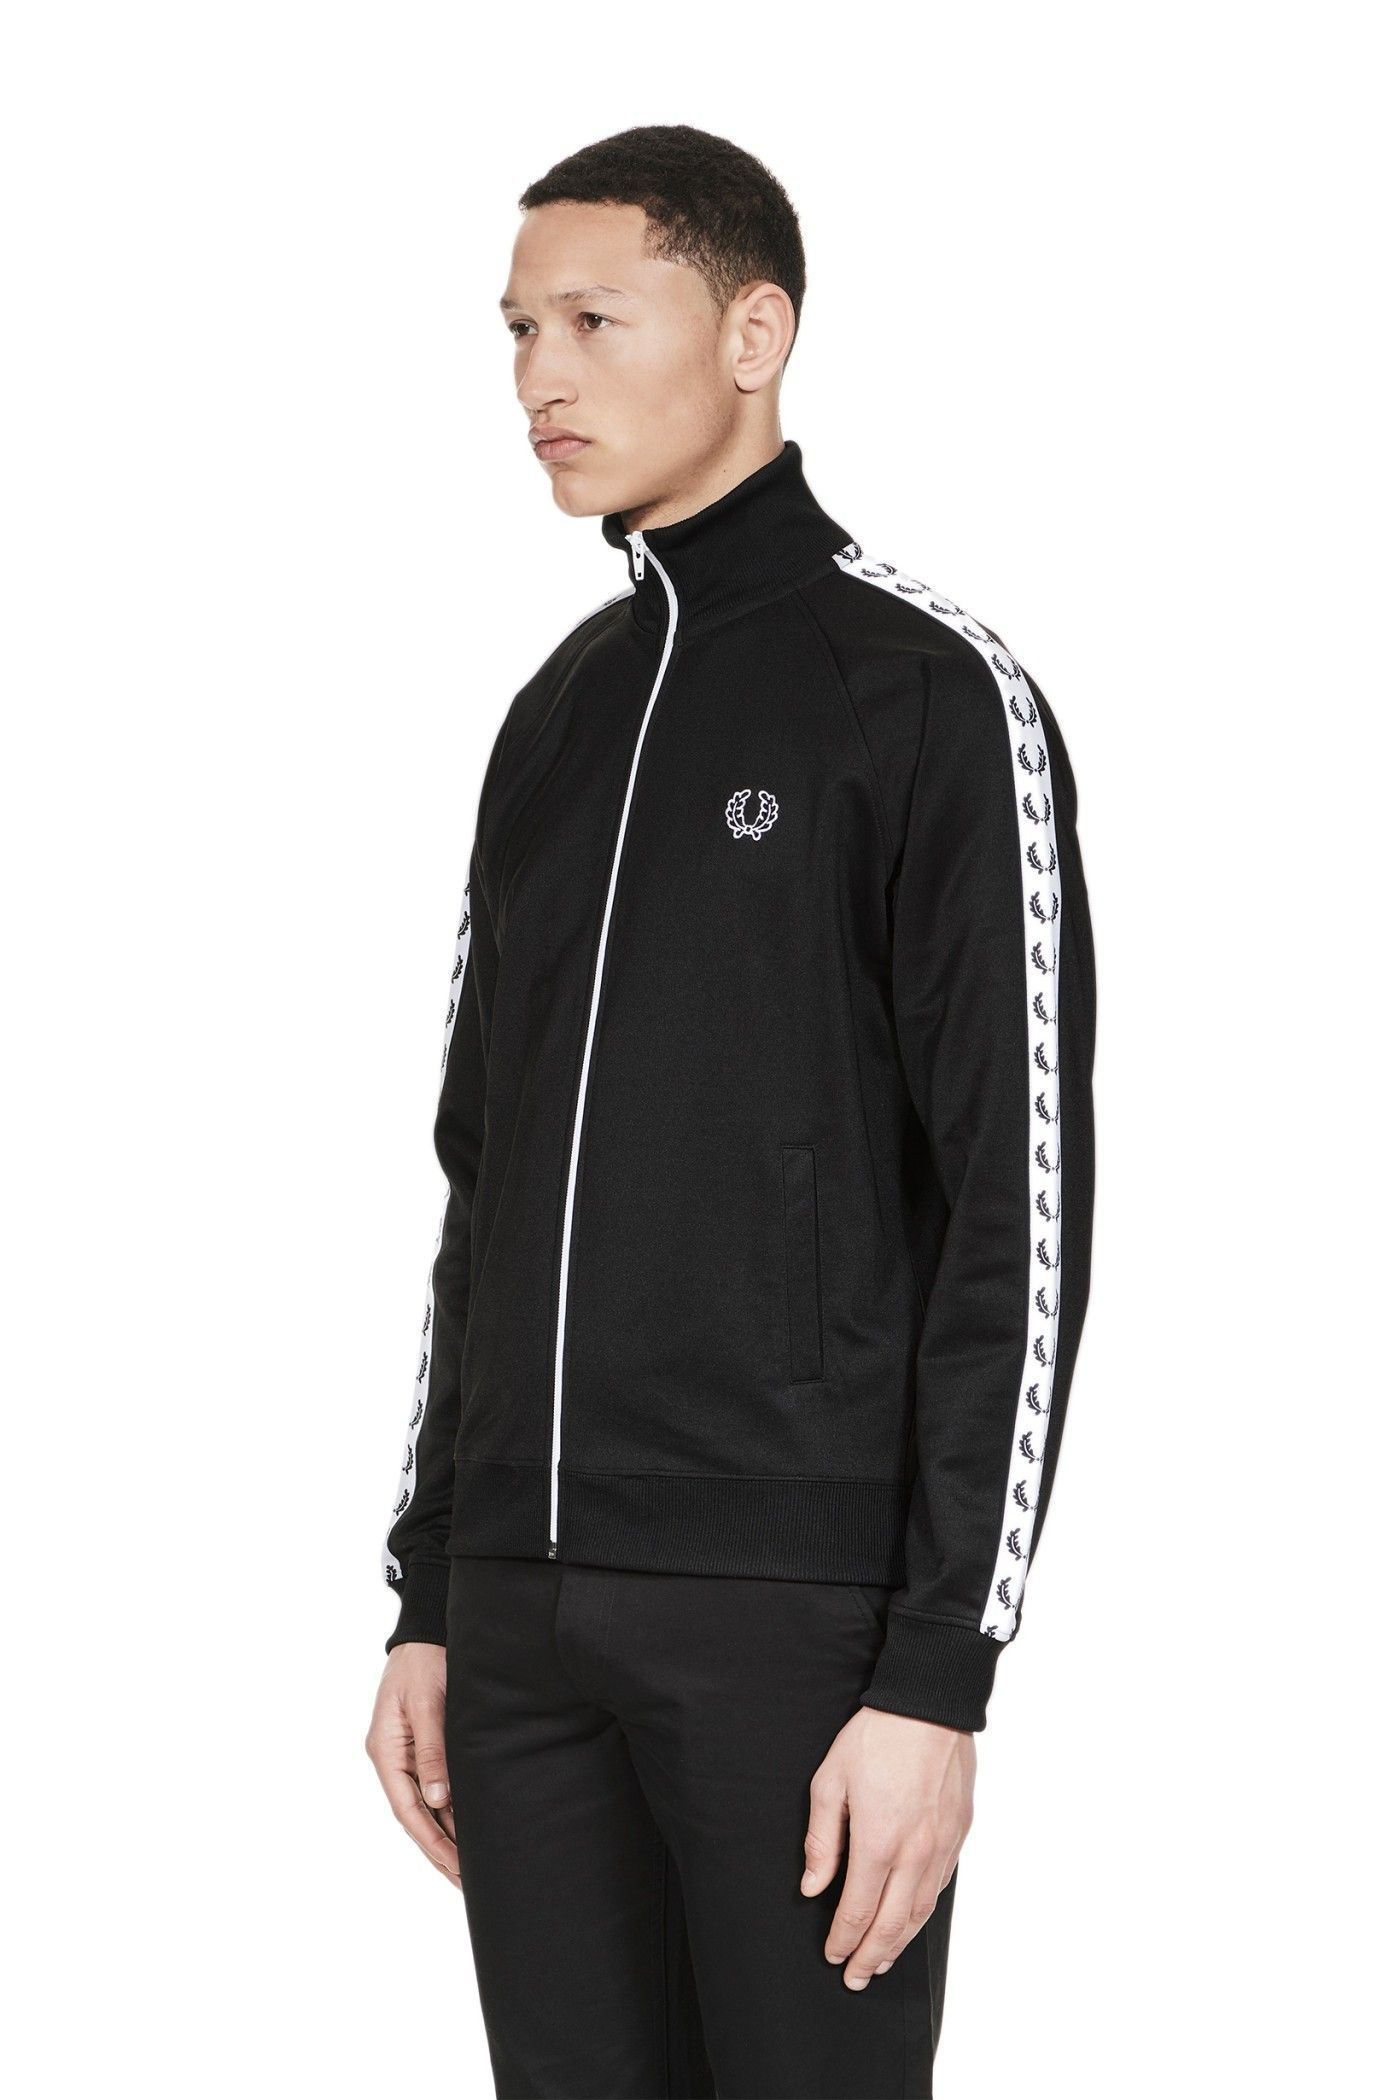 Fred Perry - Sports Authentic Taped Track Jacket Black